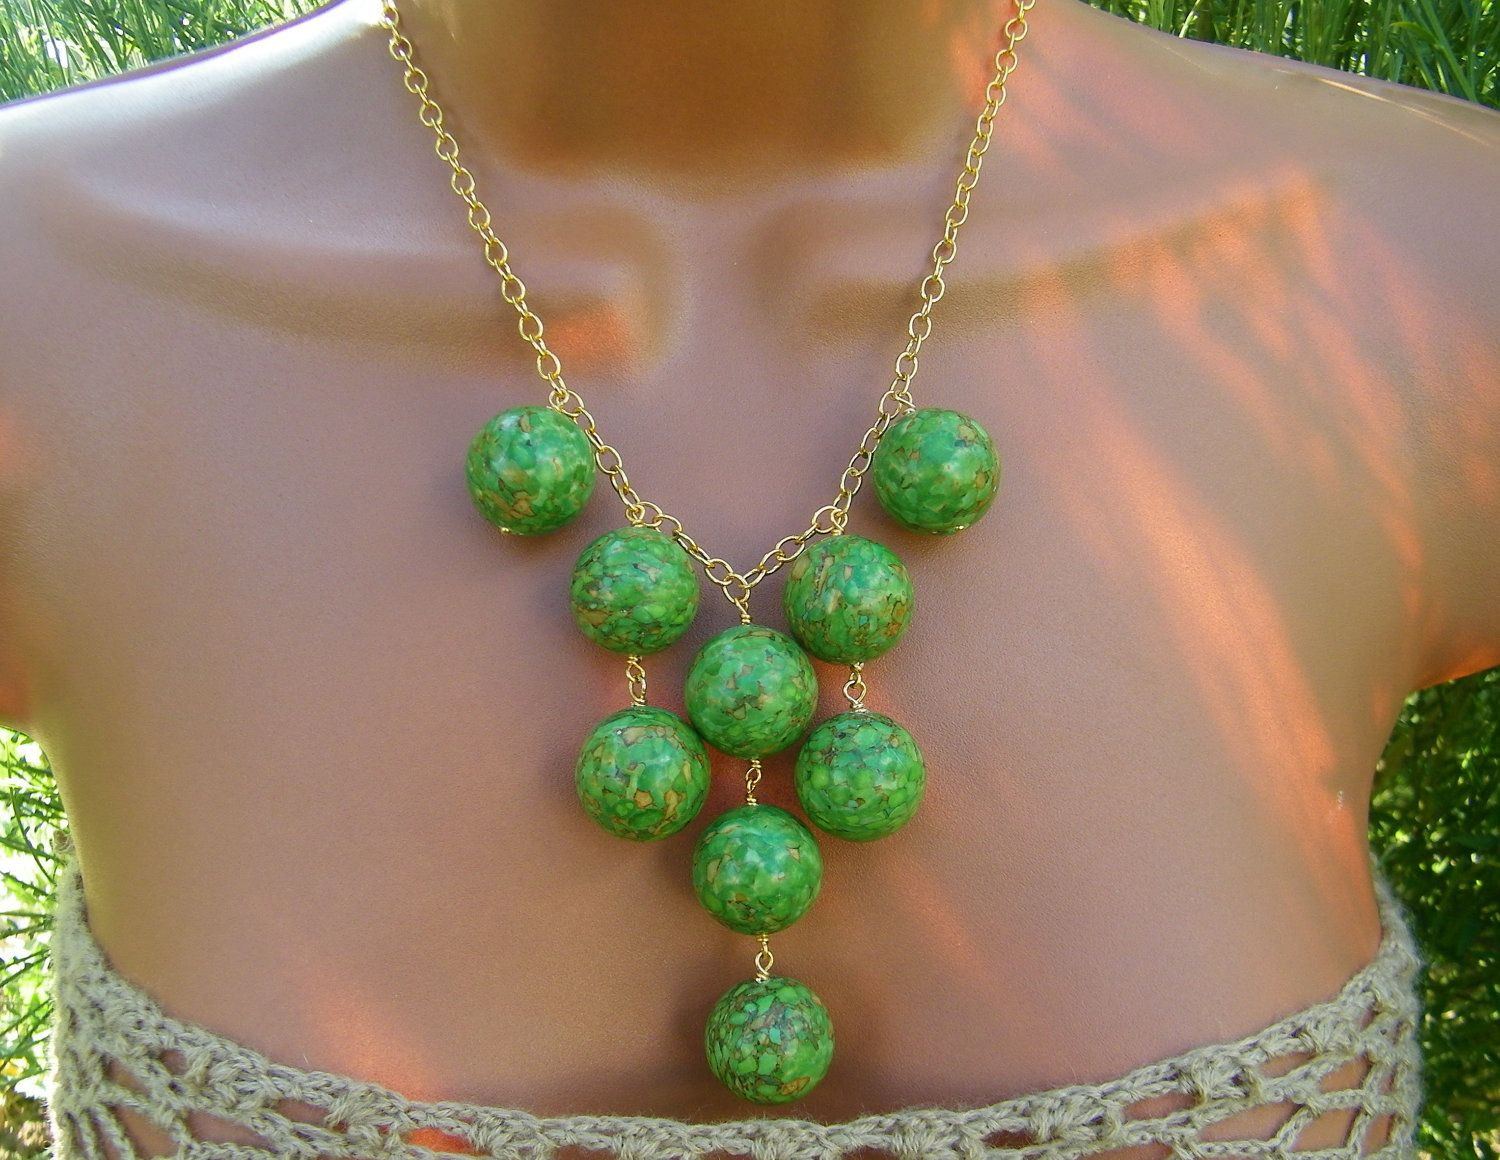 Mosaic Green Turquoise Bib Necklace. Large Grass Green Stone Statement Necklace.. $42.00, via Etsy.